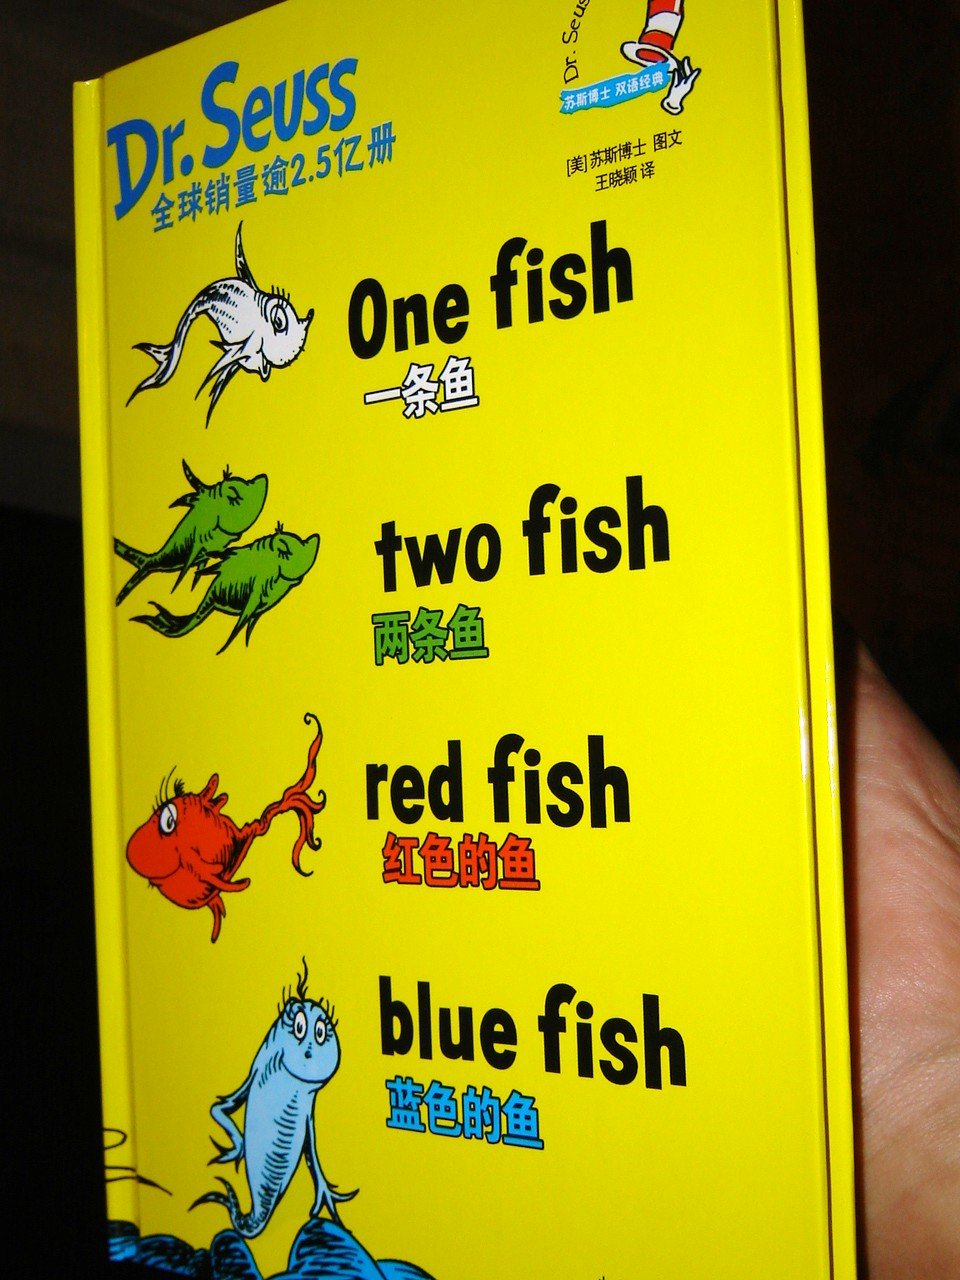 Download One fish, two fish, red fish, blue fish / Dr. Seuss Classics / English – Chinese Bilingual Edition / 2009 Print ebook